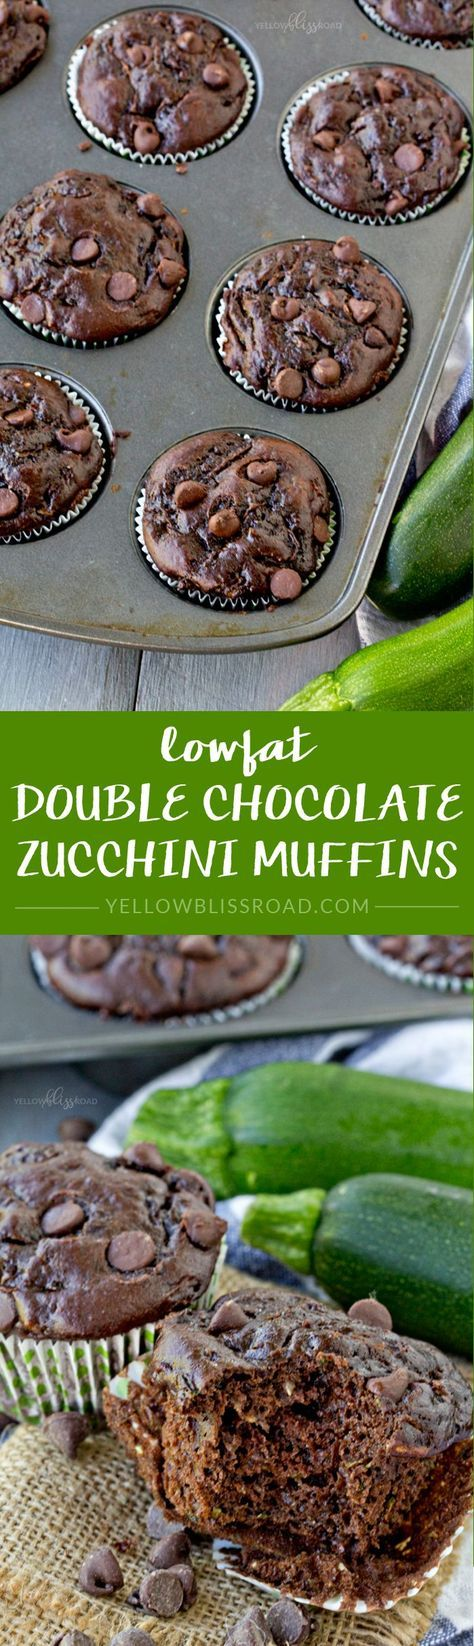 Lowfat Double Chocolate Zucchini Muffins Recipe - made healthier with Greek Yogurt and applesauce instead of oil or butter